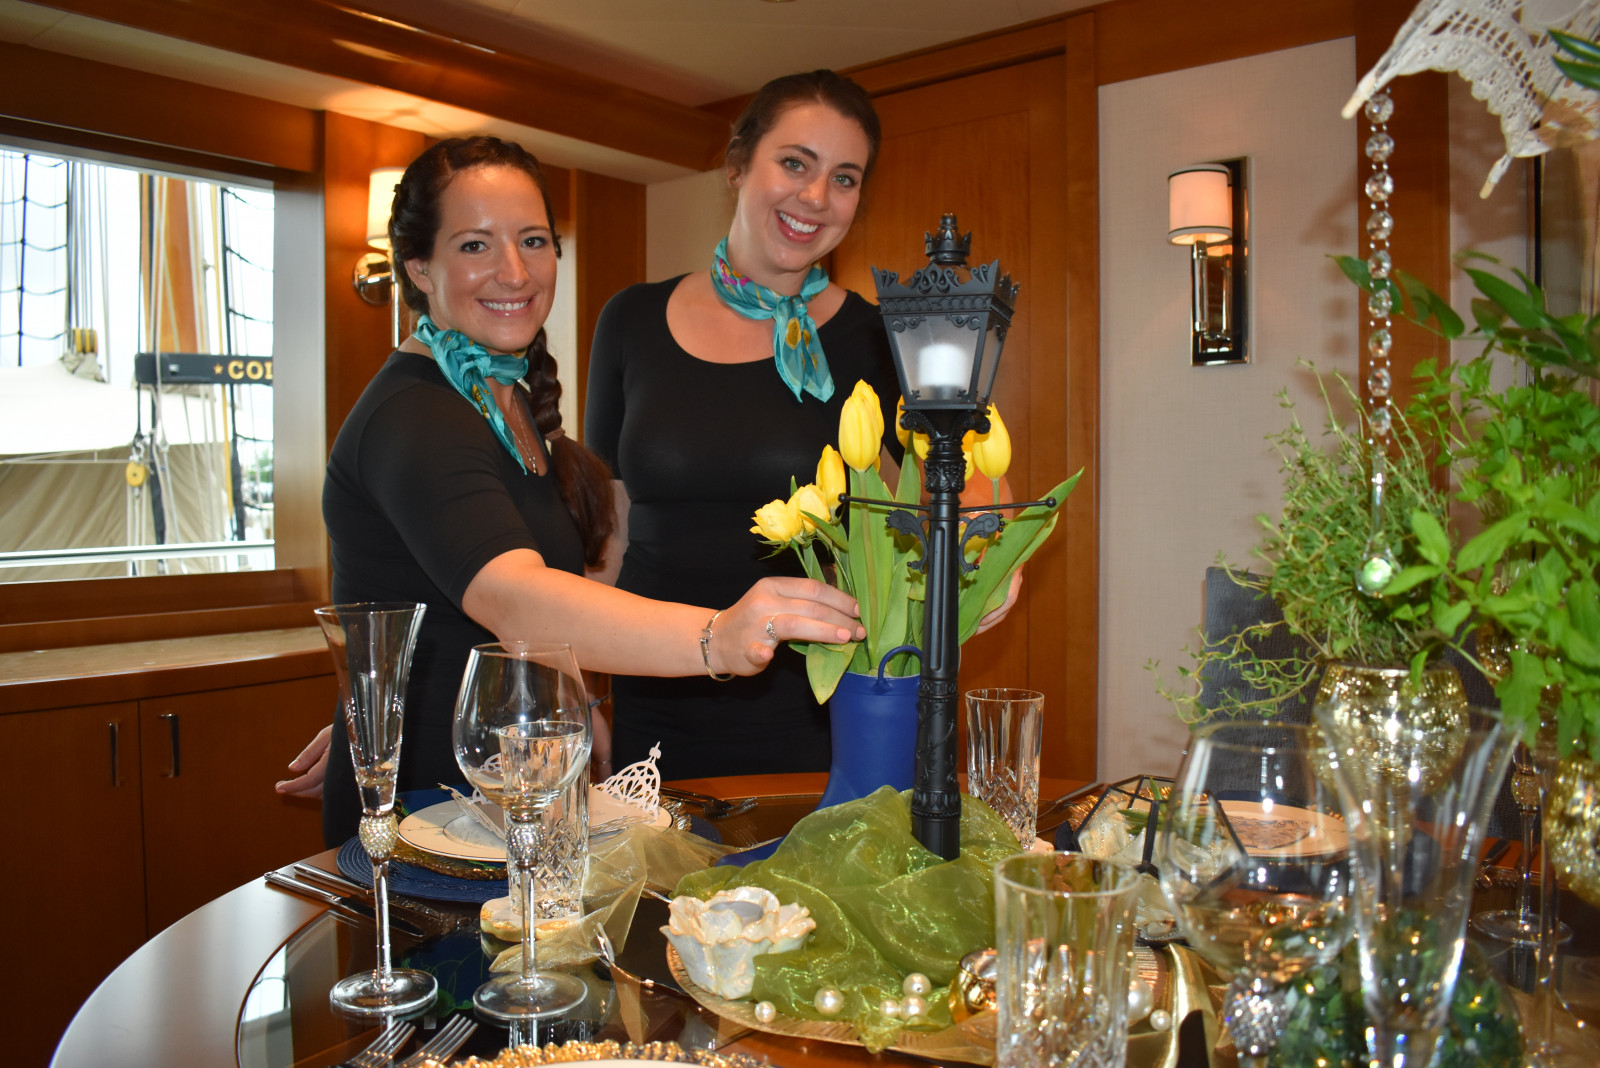 Newport19: Interior crew liven up tables, drinks at the show